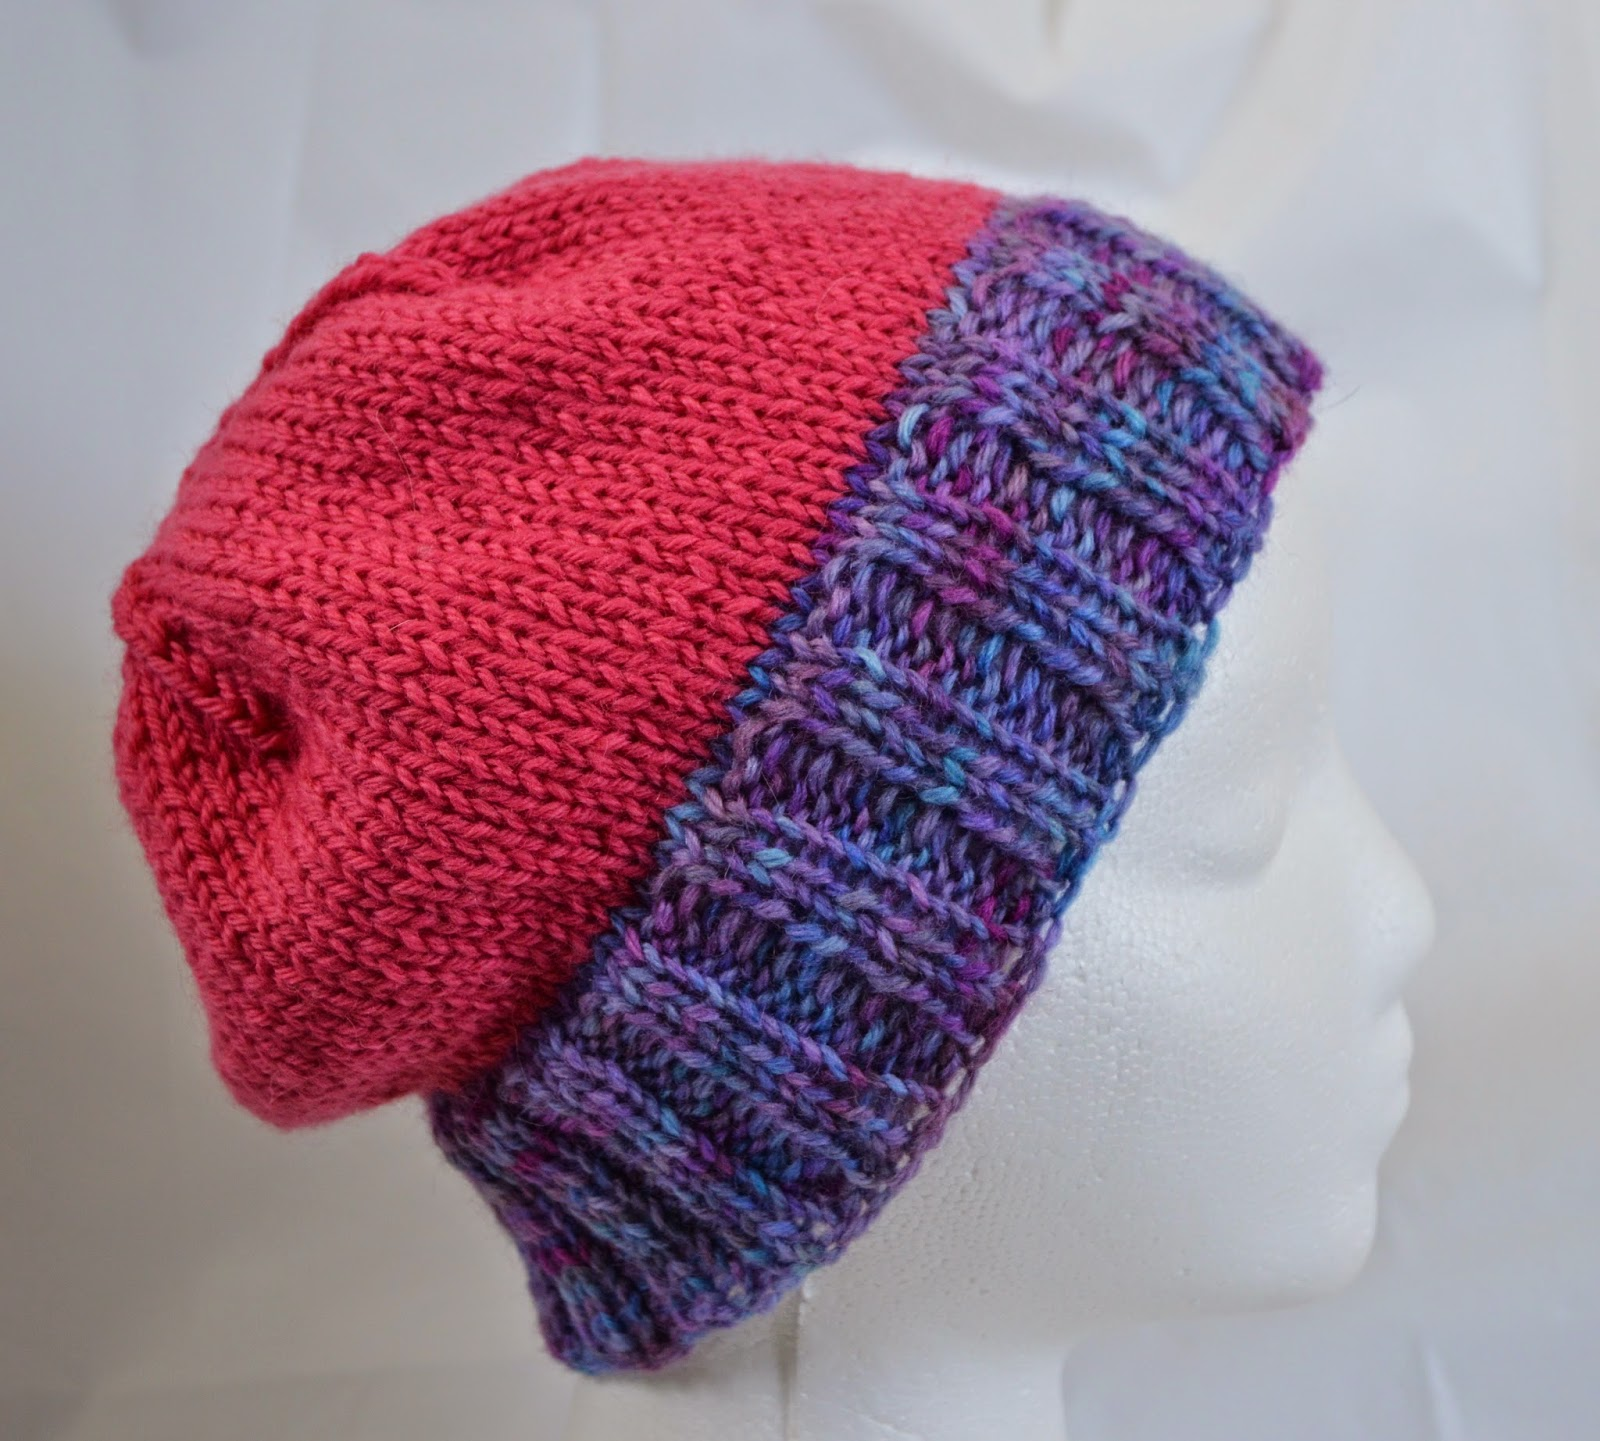 Wiinter hat for teens or preteens, hand dyed purple and pink wool, slightly slouchy